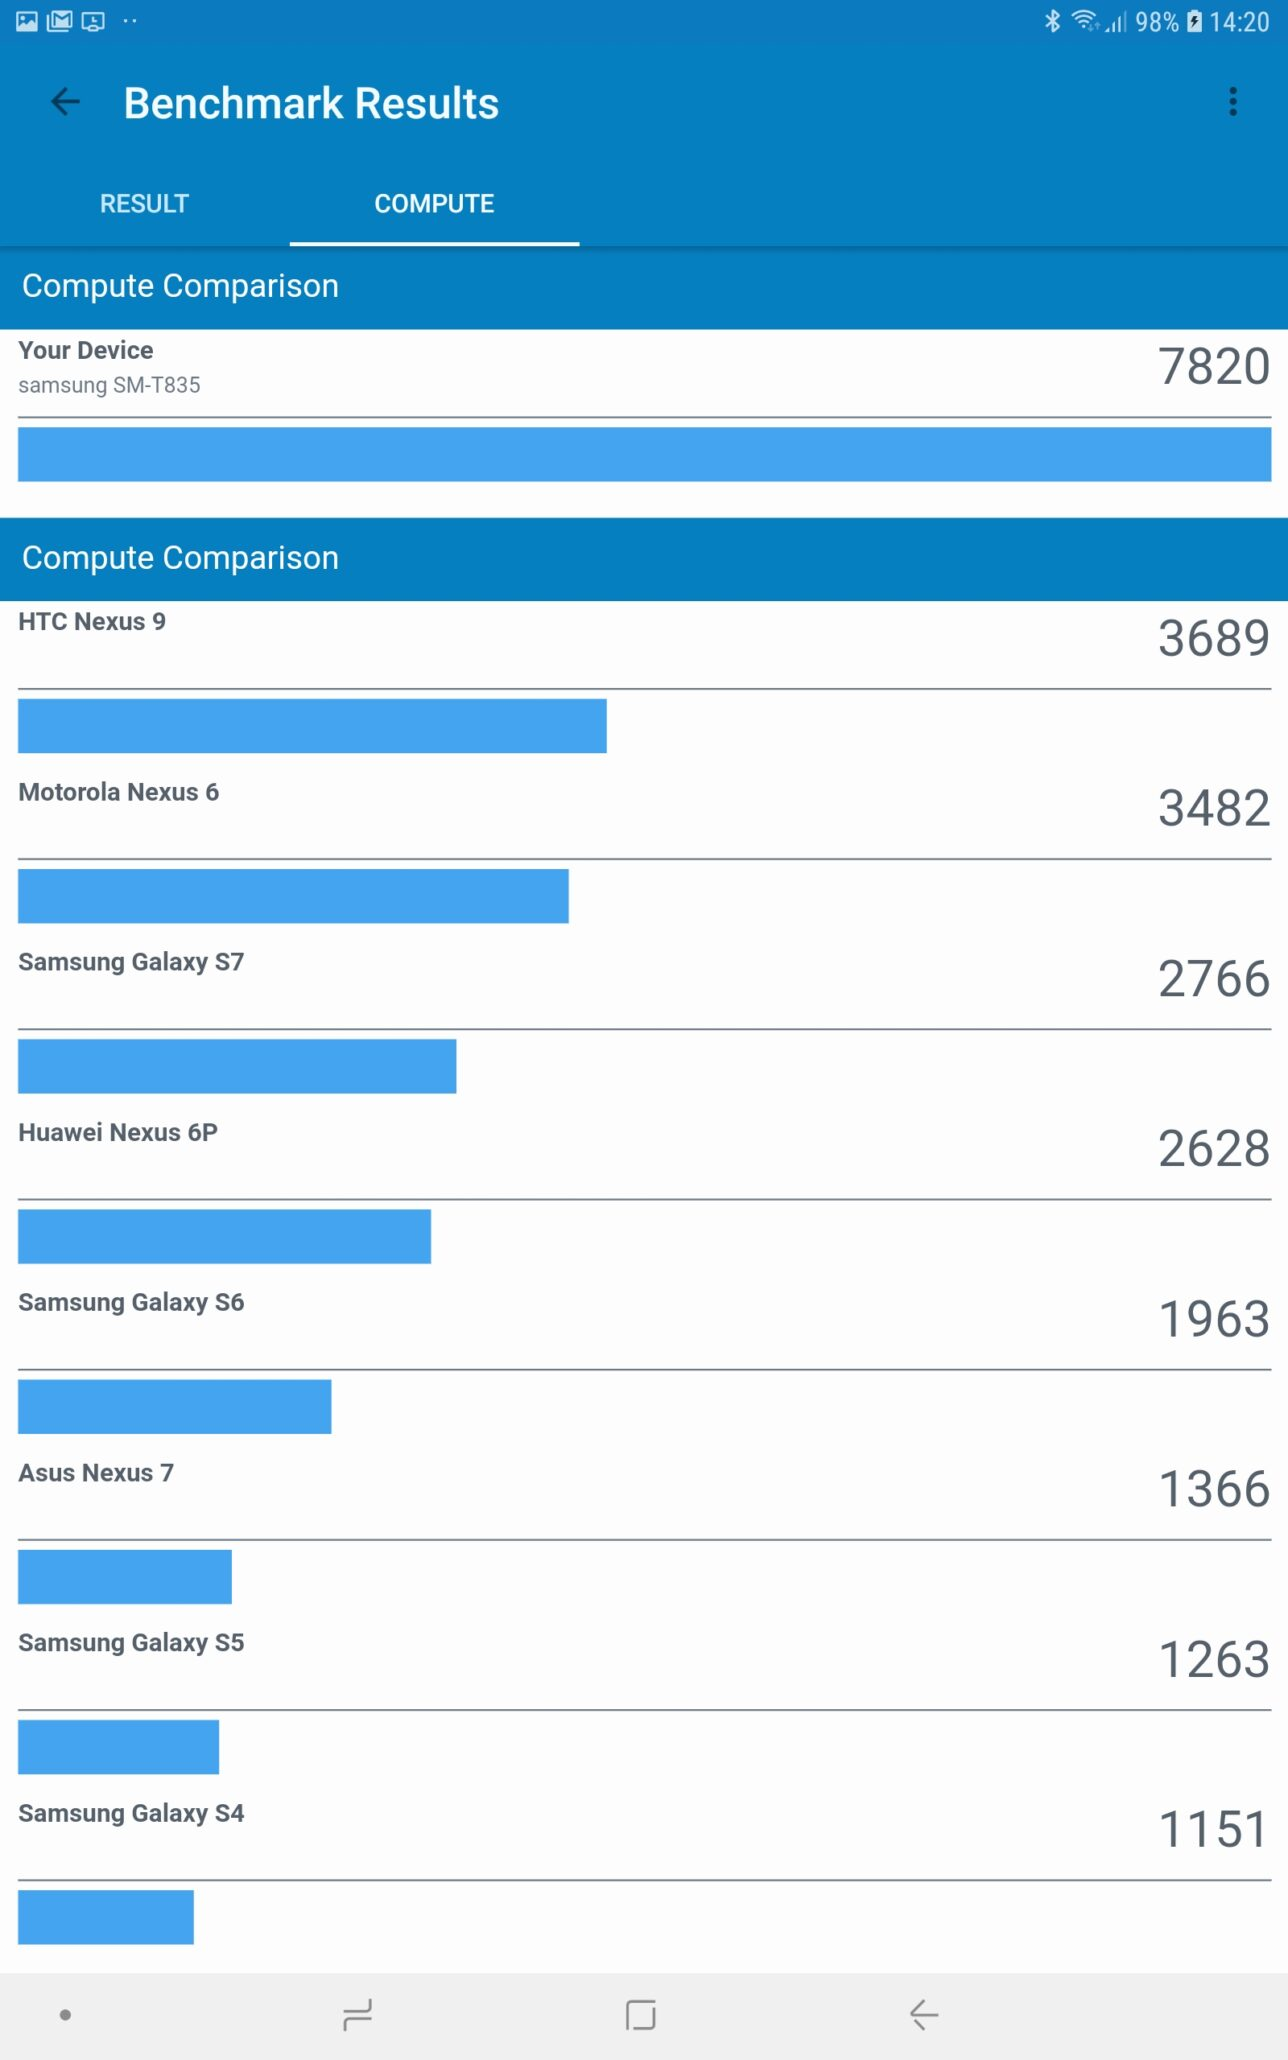 samsung-galaxy-tab-s4-review-07-benchmarking-geekbench-part-11